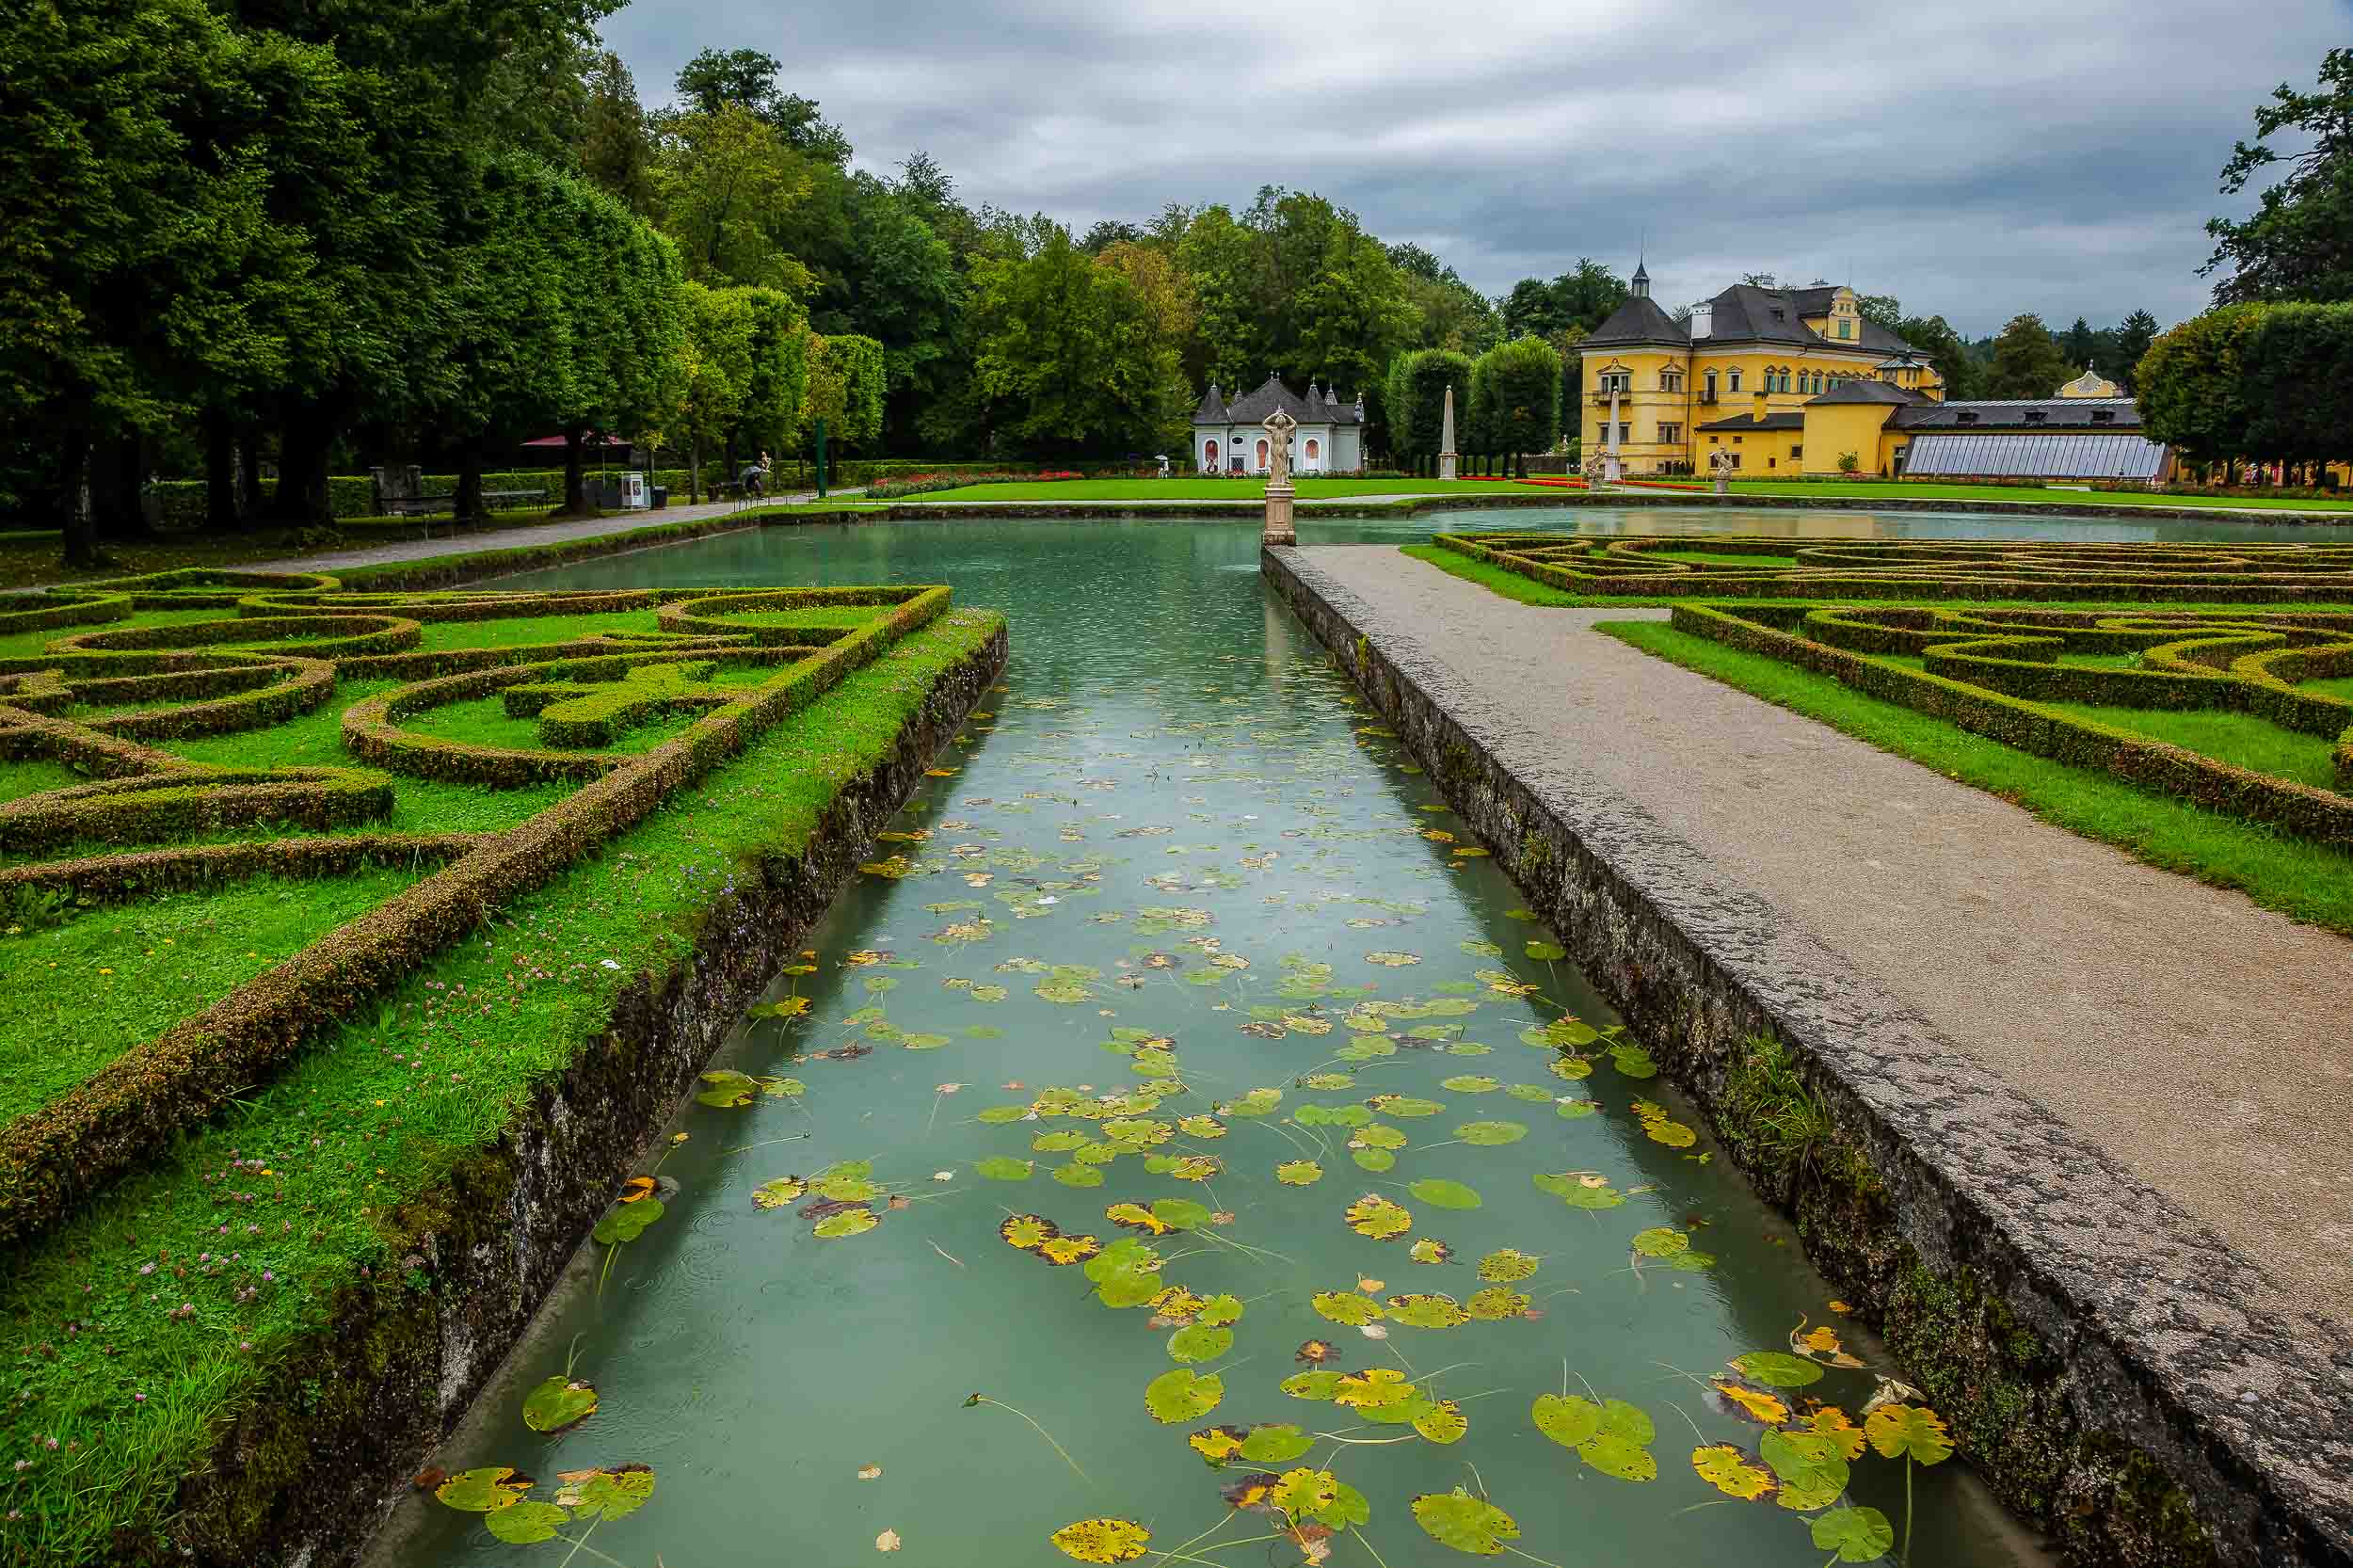 Whatever the weather    Salzburg    is a beautiful destination and a wonderful place to explore on foot. This photo showcases a    pool   , in a    beautifully designed garden   , where trees and the colors    green and yellow    dominate.